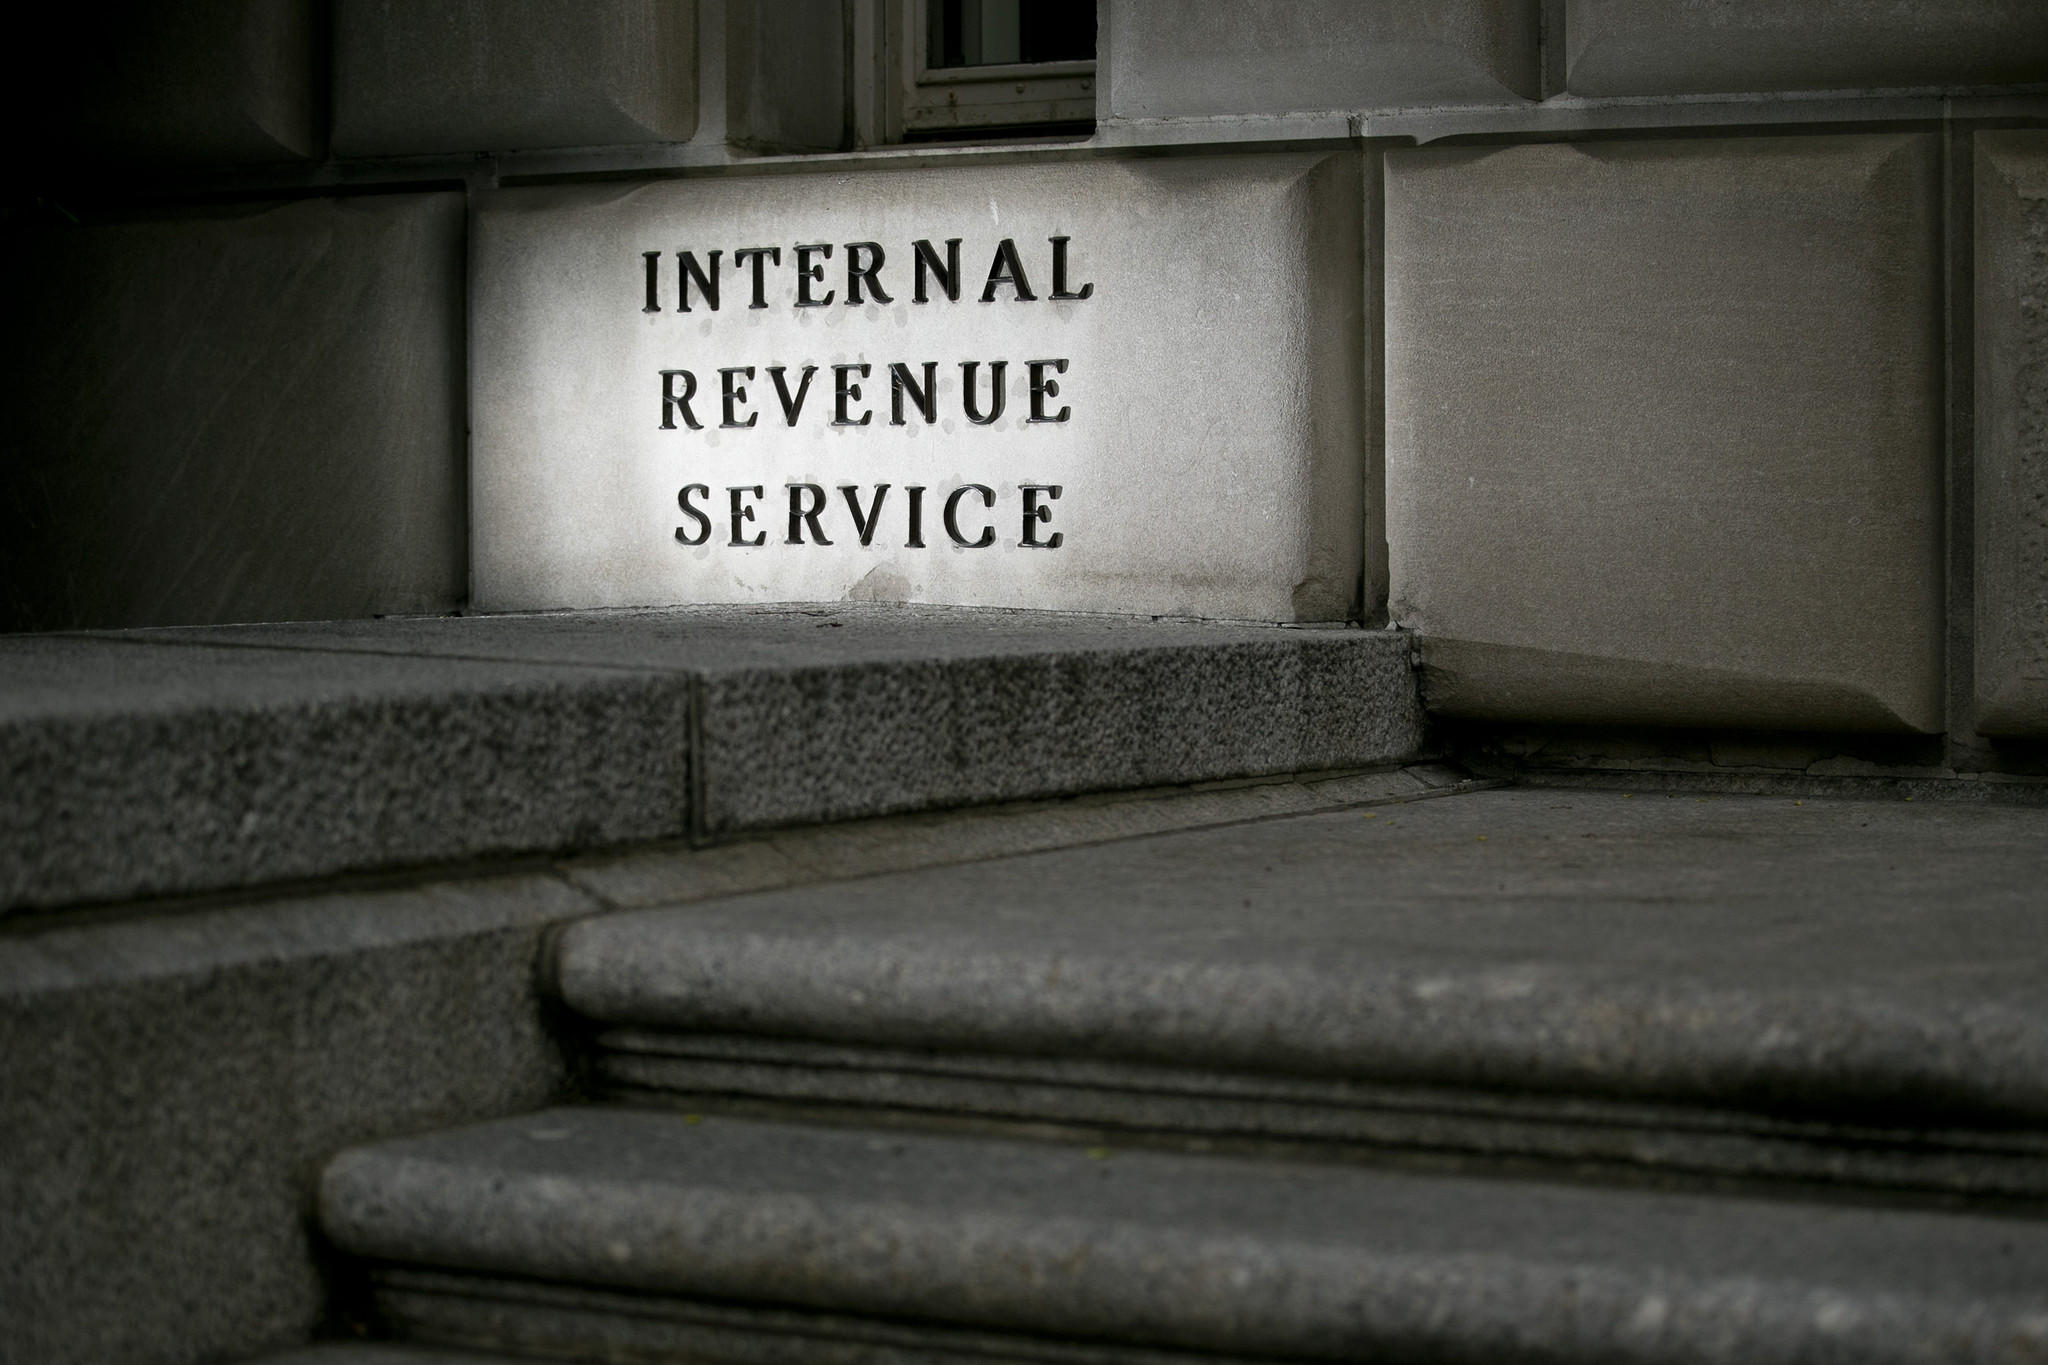 The Internal Revenue Service (IRS) headquarters stands in Washington, D.C., U.S., on Wednesday, May 15, 2013.